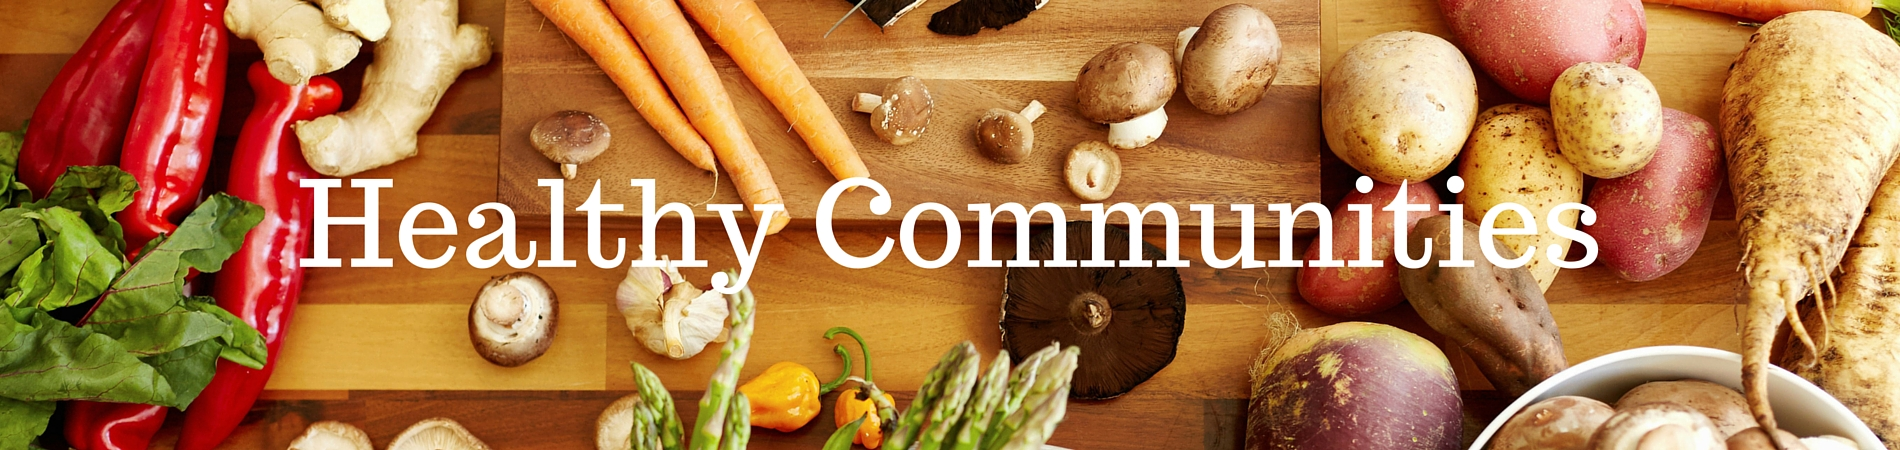 Healthy Communities Banner 2.jpg thumbnail